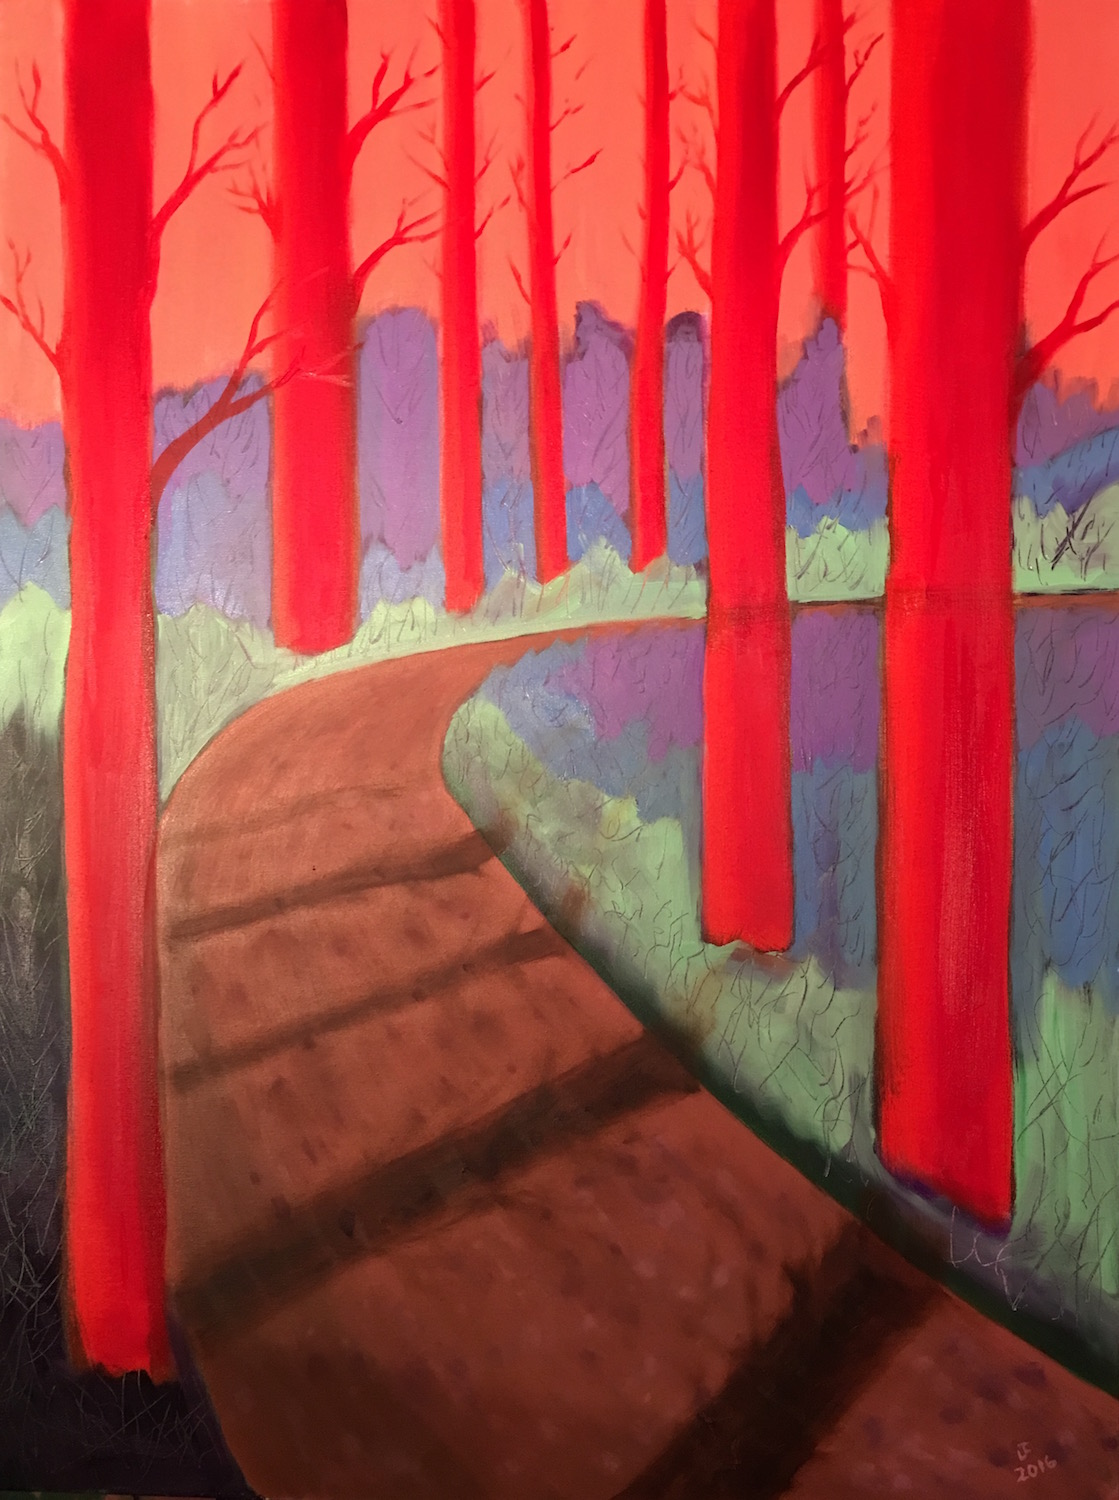 Red Trees - Oil on Canvas30 x 40Now residing in Greenland, NH